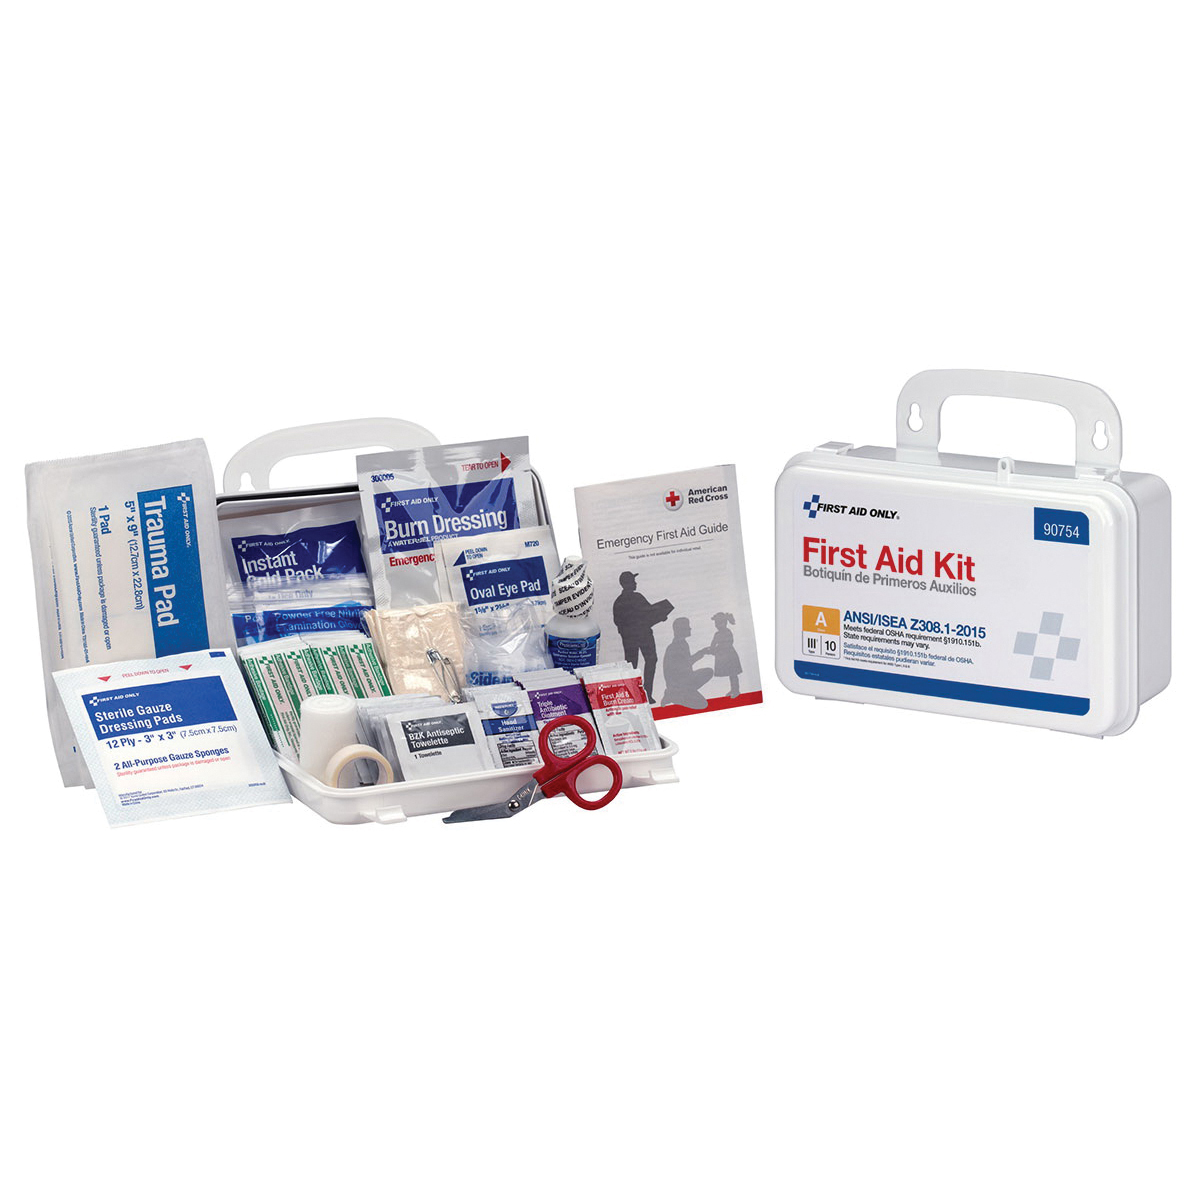 Mallory 4-Shelf First Aid Cabinet With Medications, ANSI B+ Compliant